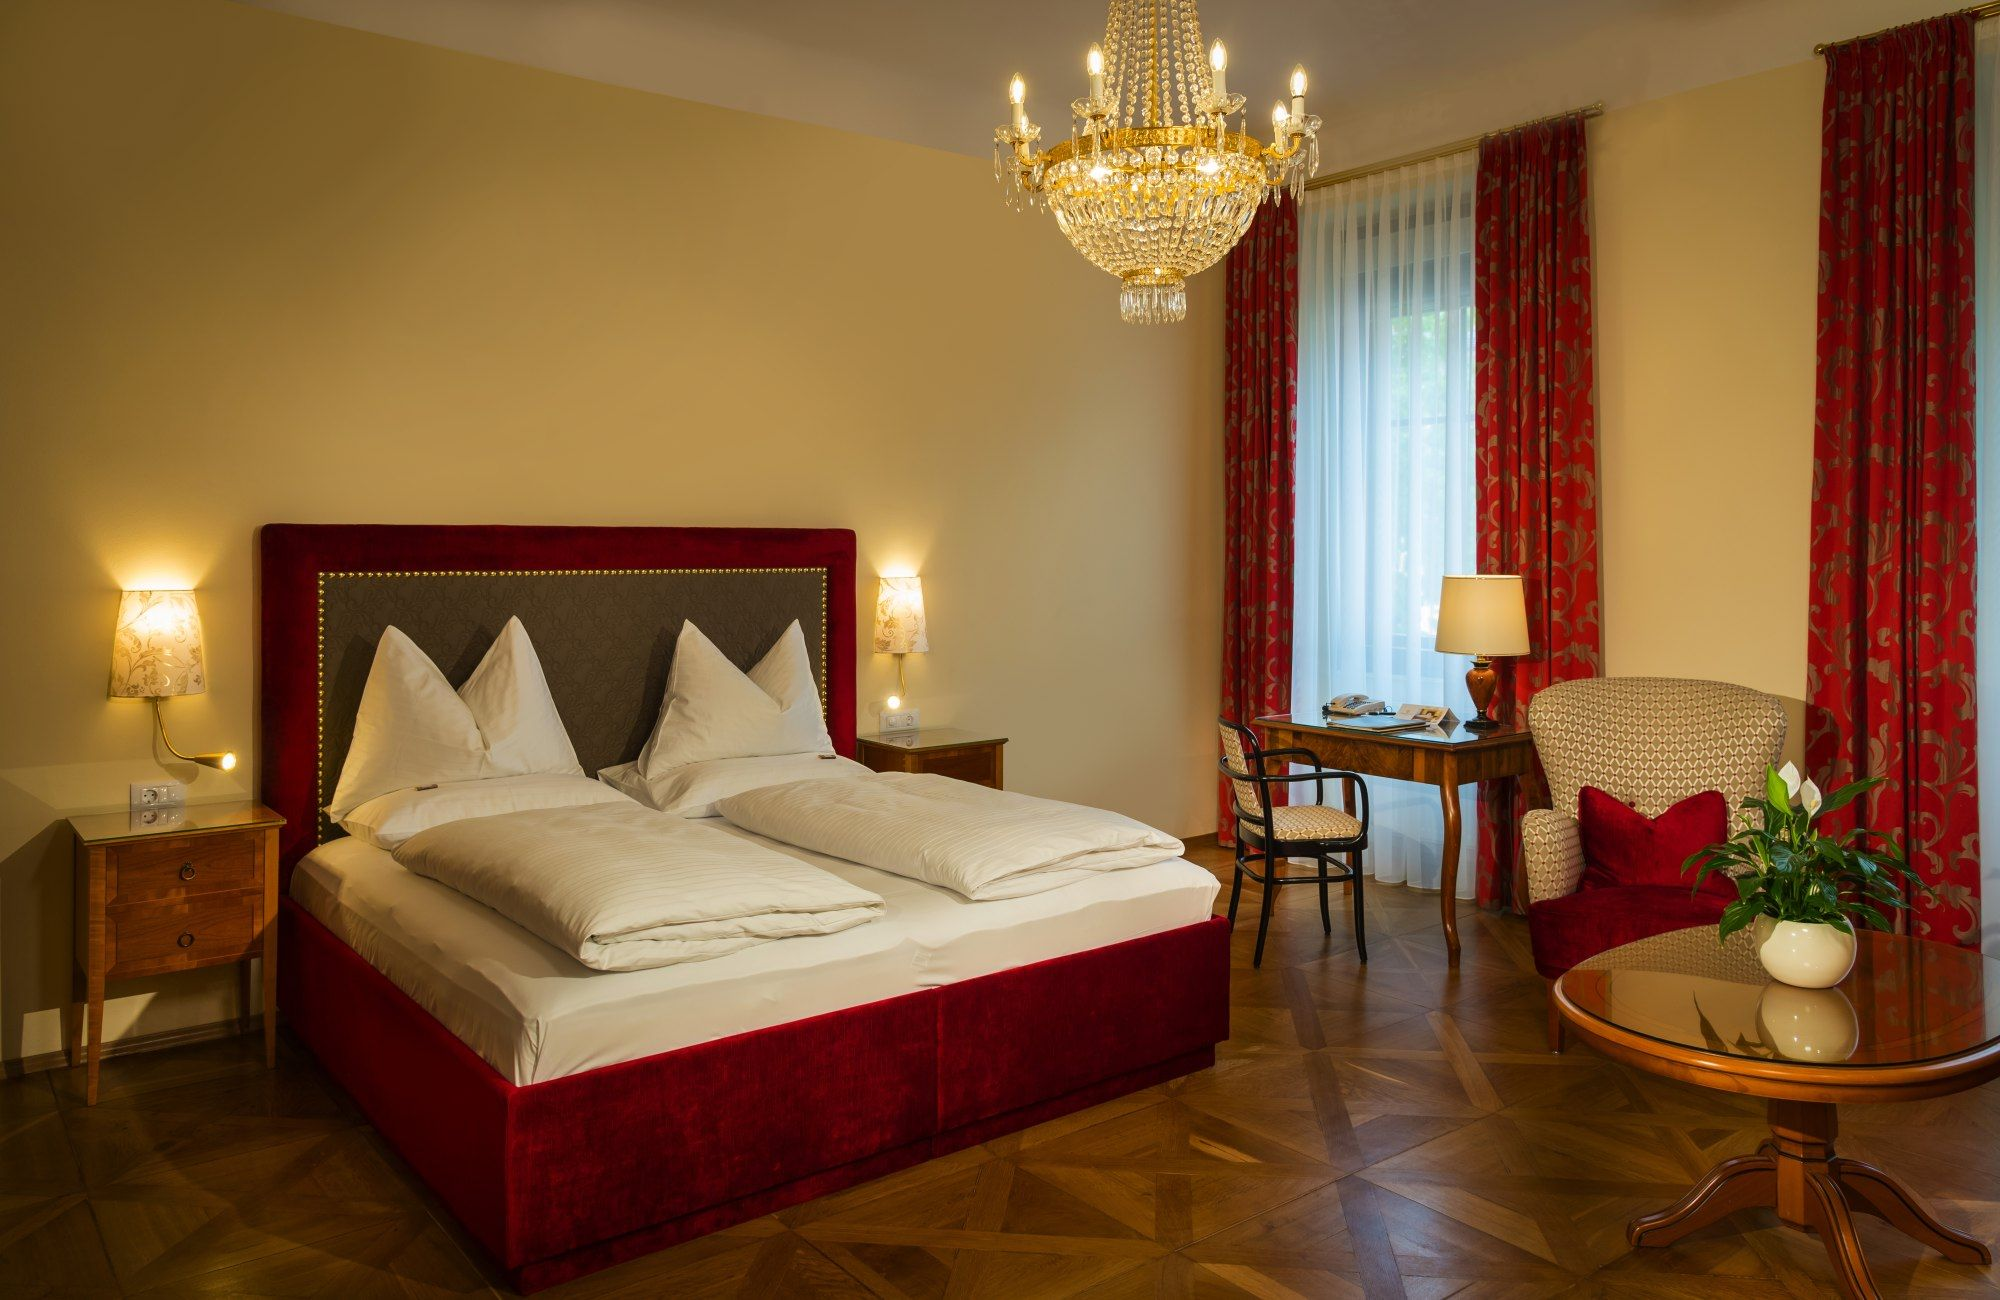 Zimmer im traditionellen stil pin by parkhotel graz on für idealen stadturlaub in graz  pinterest